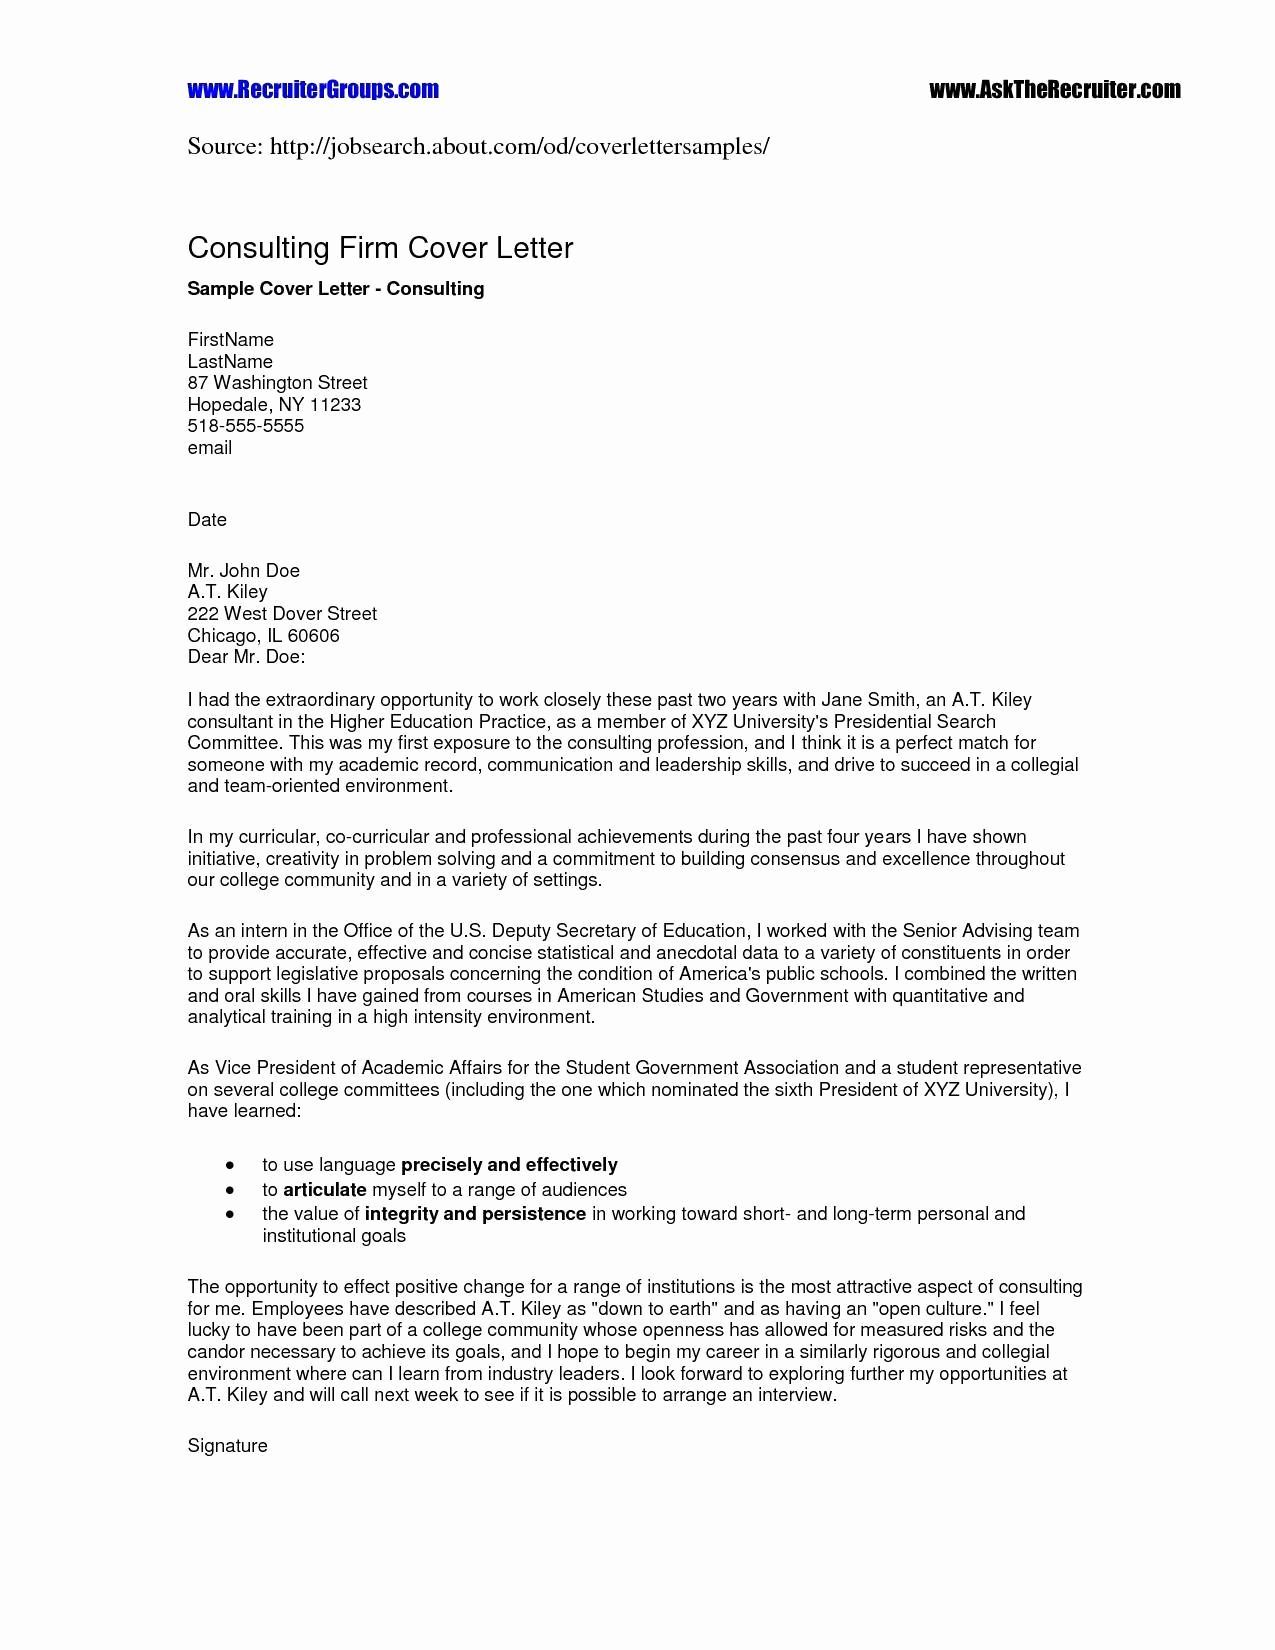 Loan Application Letter Template - Loan Agreement Letter format Awesome Cover Letter for Bank Loan